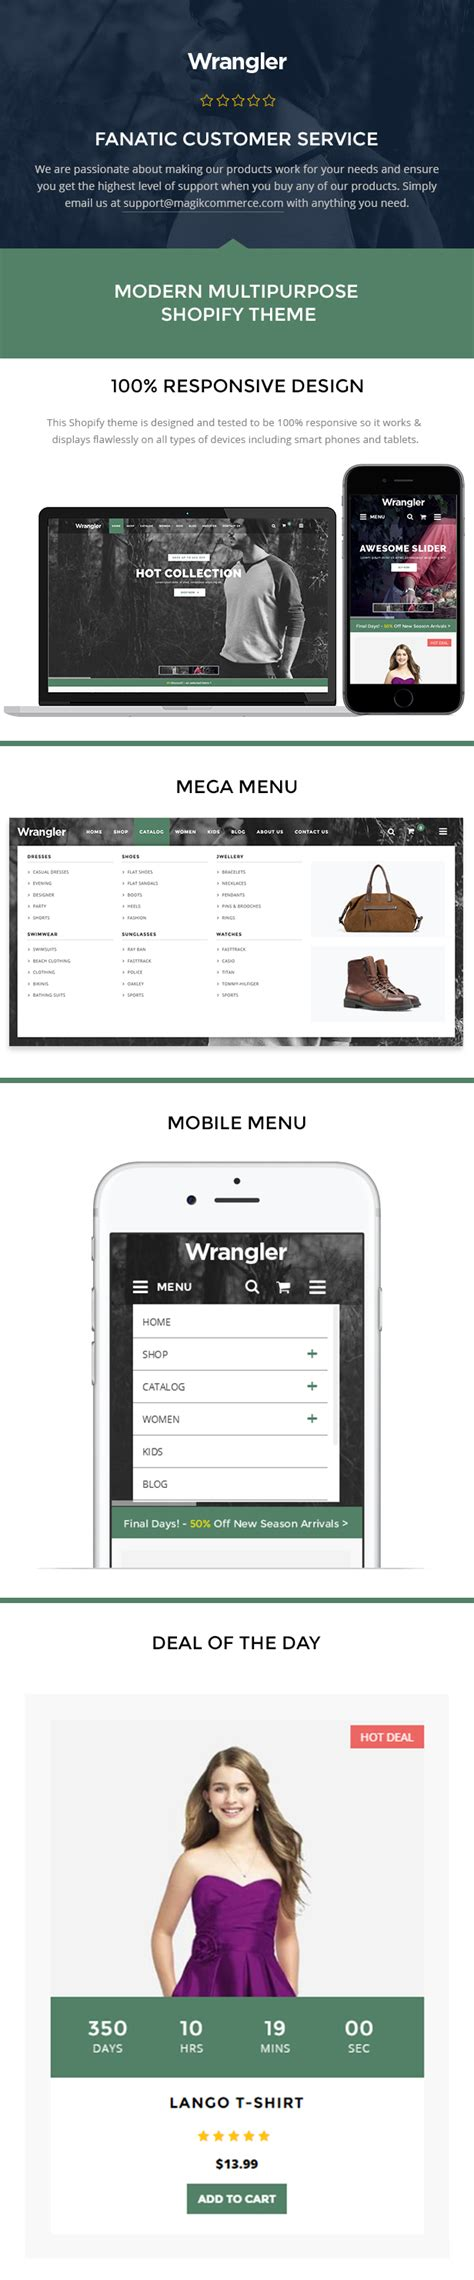 Wrangler Fashion Store Shopify Theme Template By Magikcommerce Themeforest Shopify Gallery Page Template